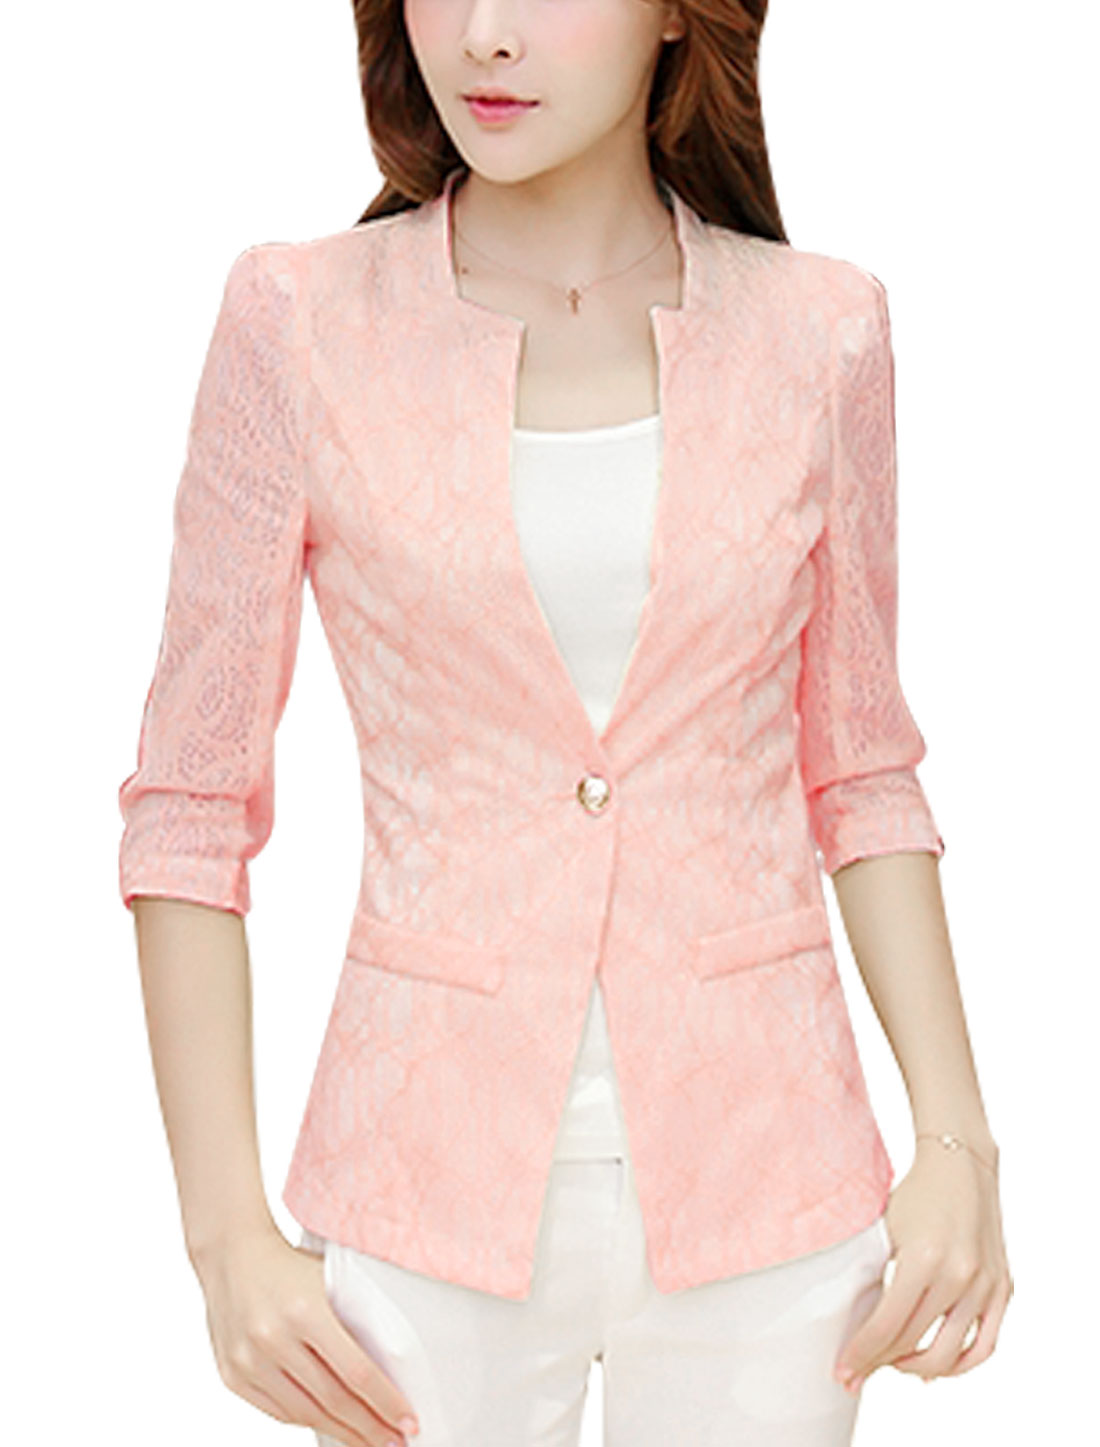 Women Half Sleeve One Button Closed Cozy Fit Blazer Jacket Pink M